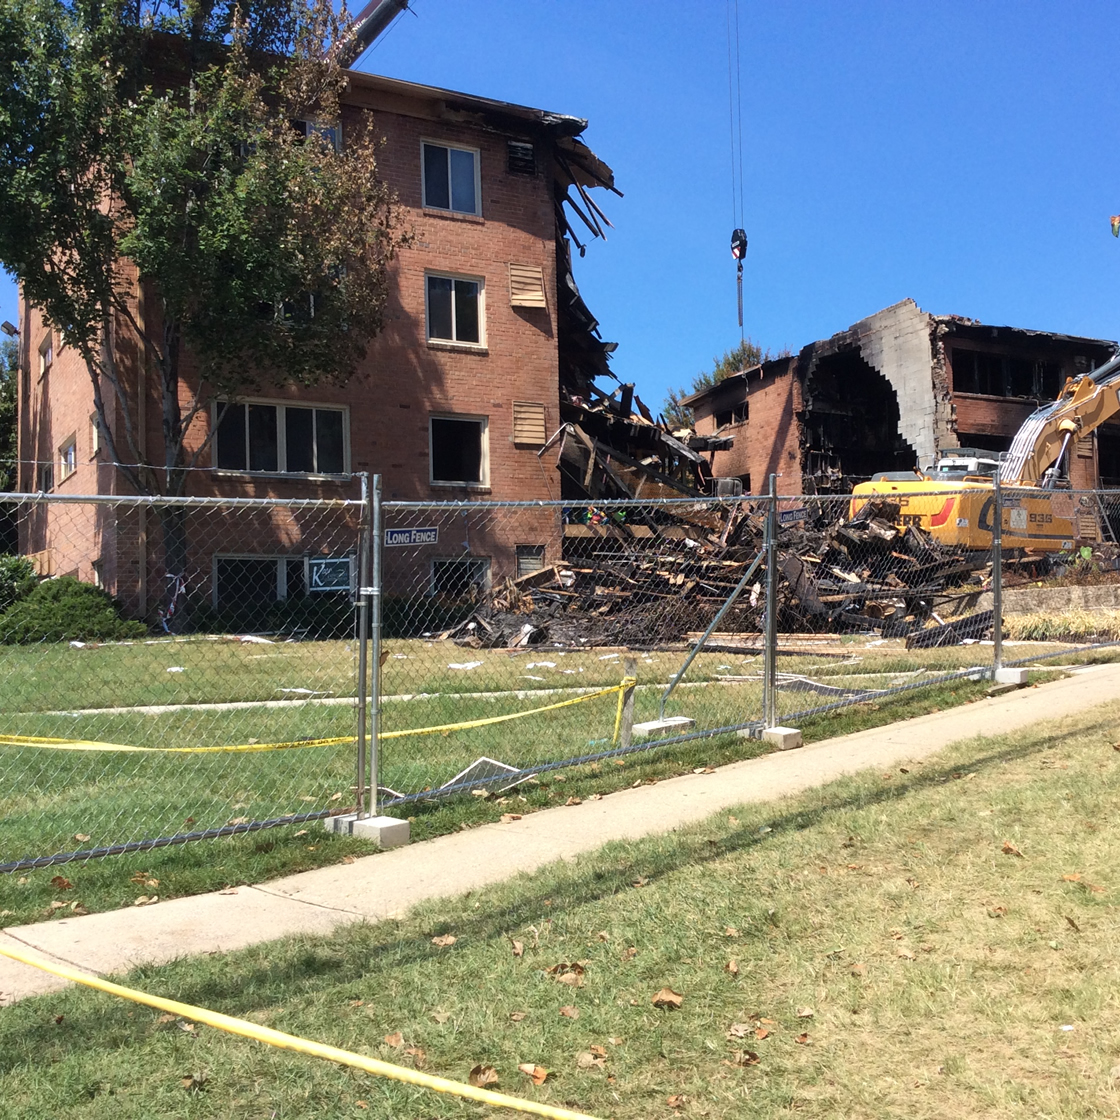 Casa Files Two Lawsuits On Behalf Of Flower Branch Apartments Fire